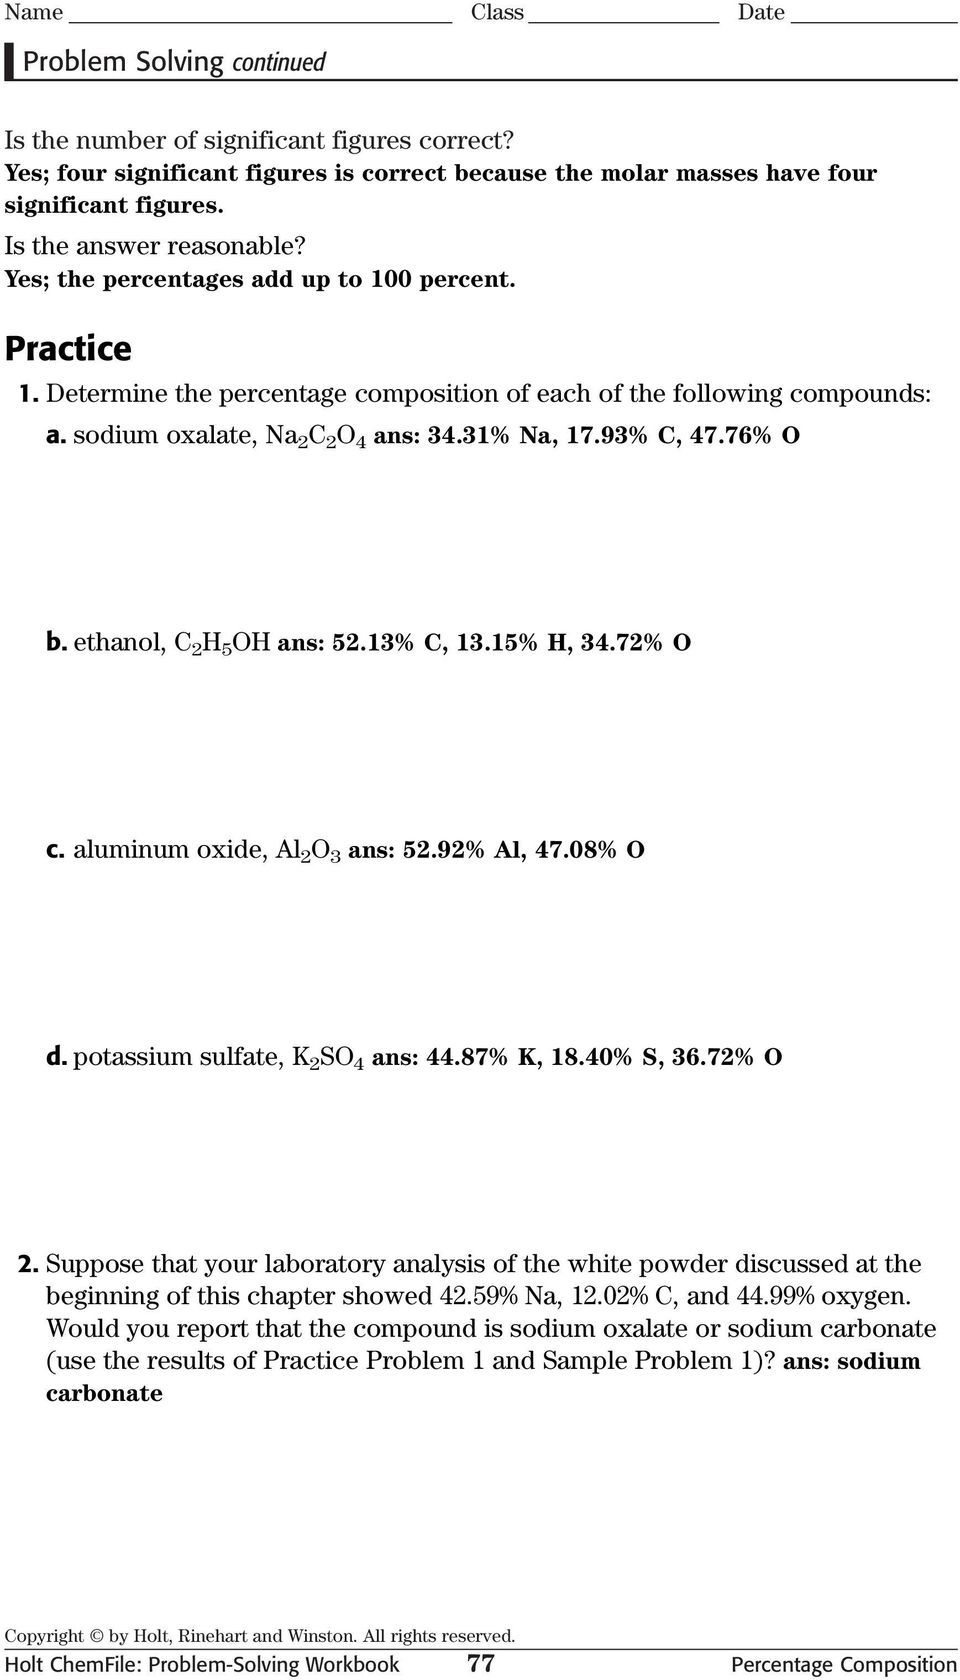 Problem Solving Percentage Composition PDF – Percentage Composition Worksheet Answers